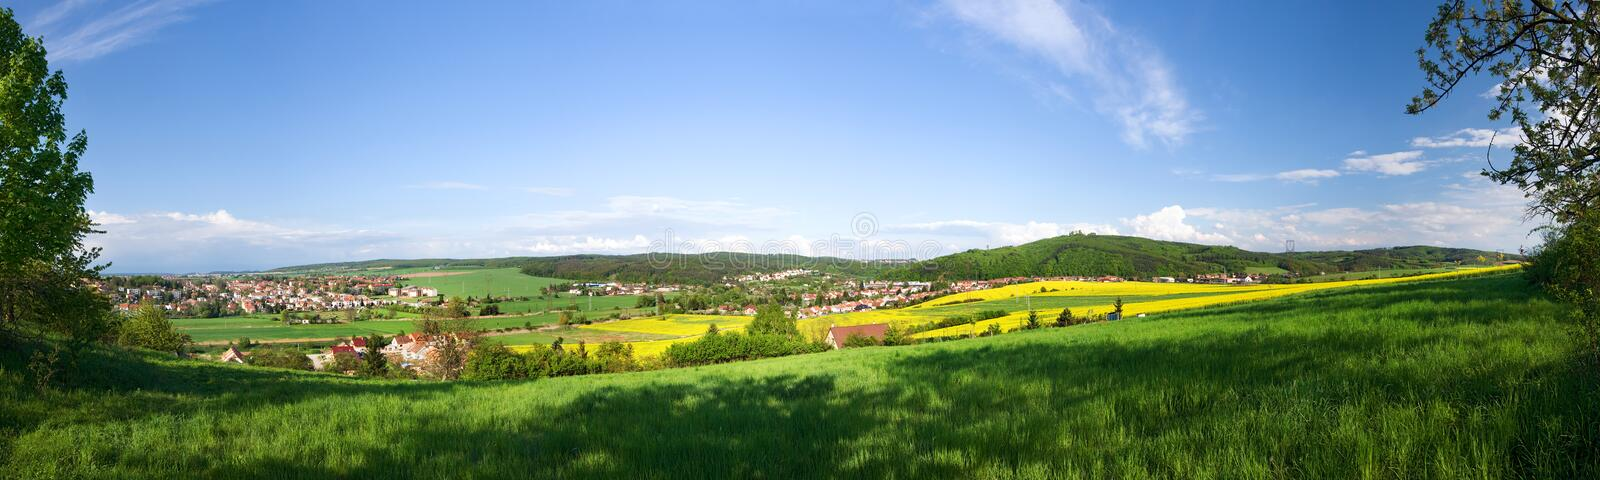 Panoramic spring landscape-6 vertical shots